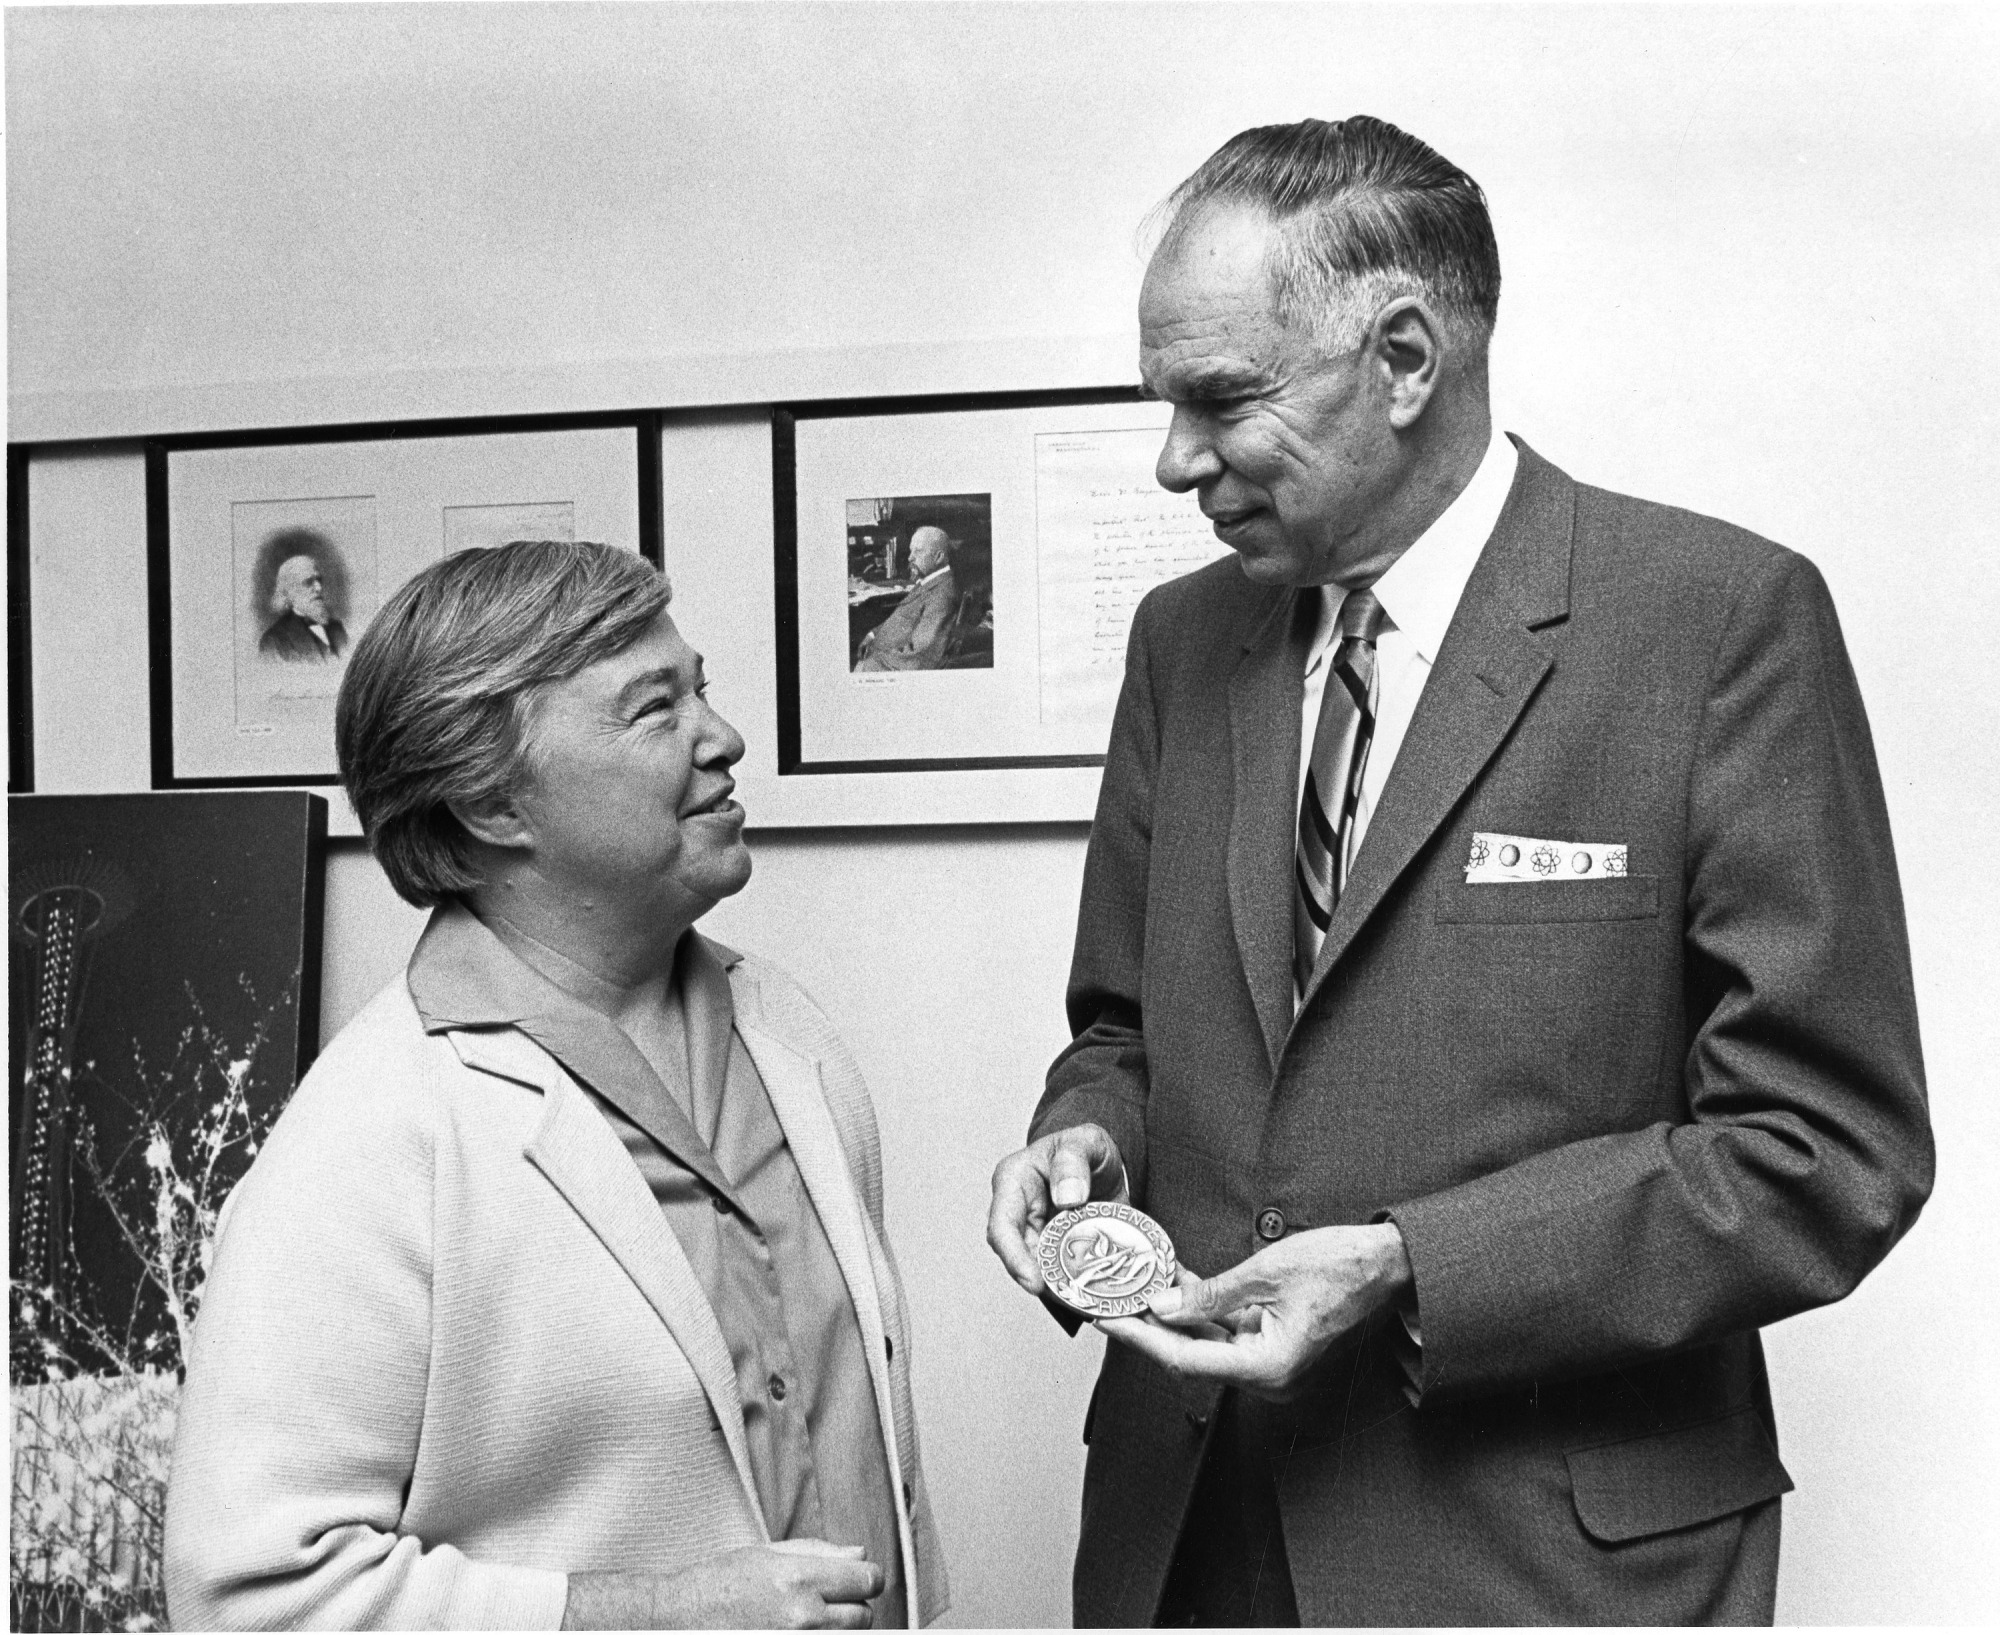 left to right: Dixy Lee Ray (1914-1994) and Glenn Theodore Seaborg (1912-1999)